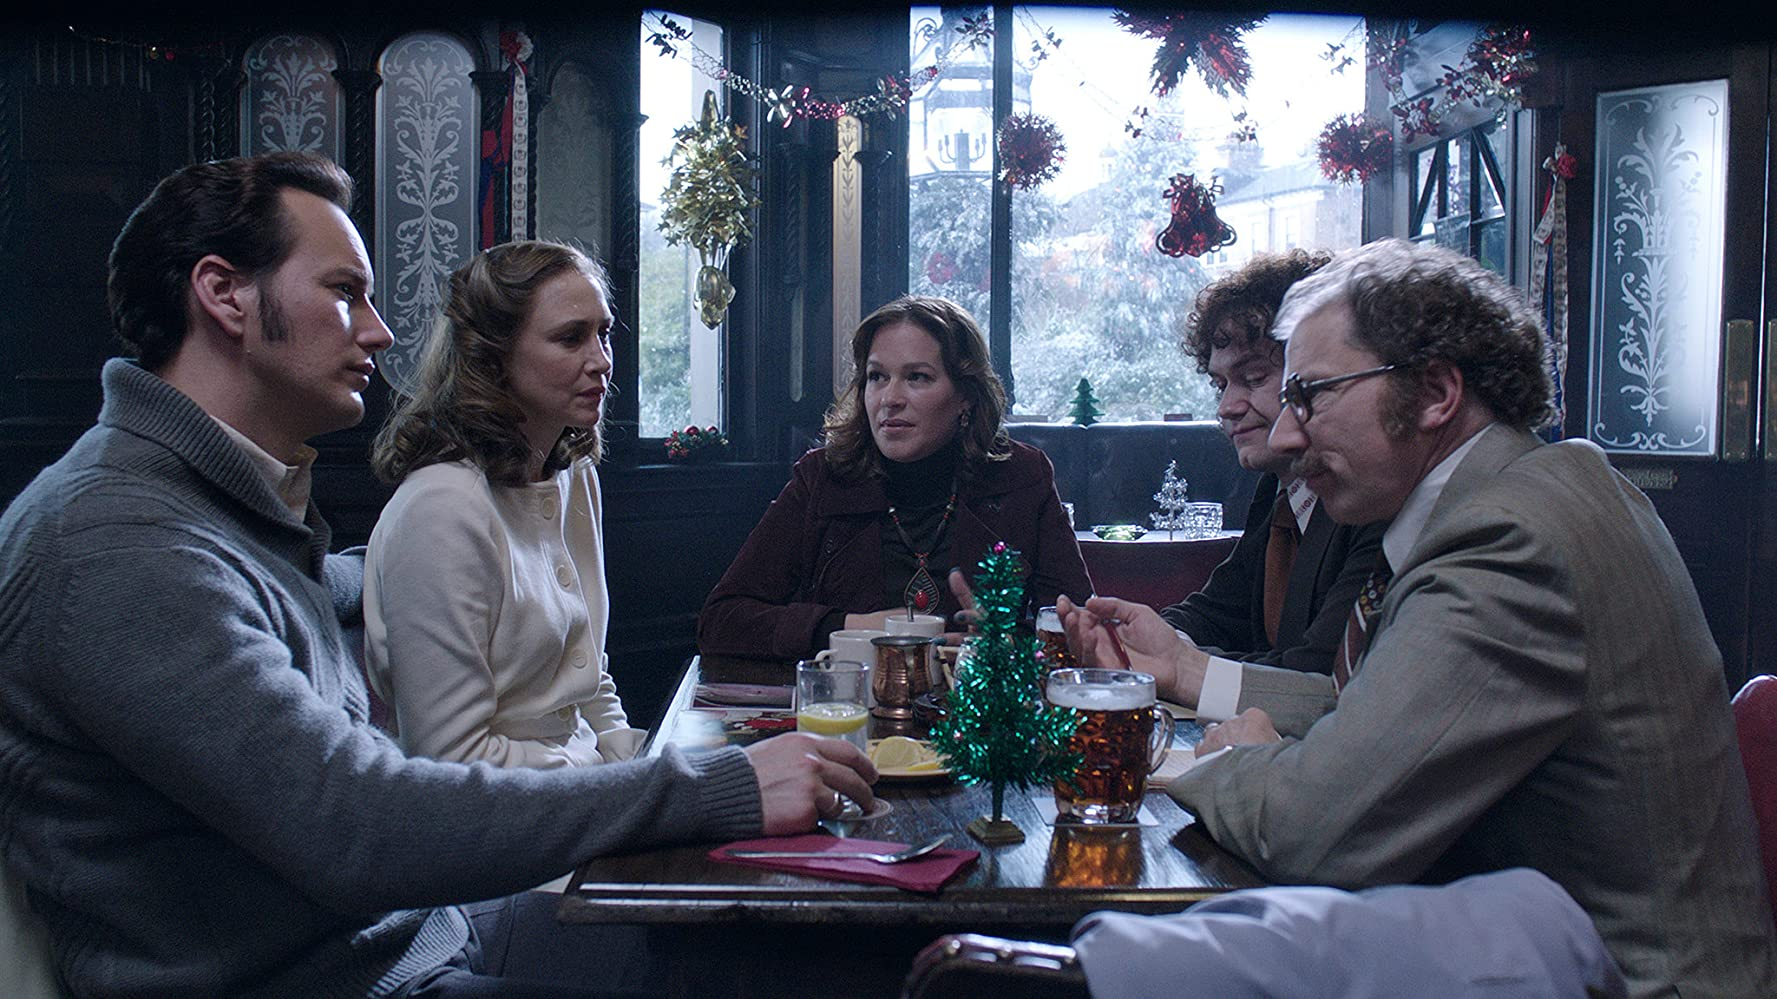 Franka Potente, Vera Farmiga, Simon McBurney, and Patrick Wilson in The Conjuring 2 (2016)